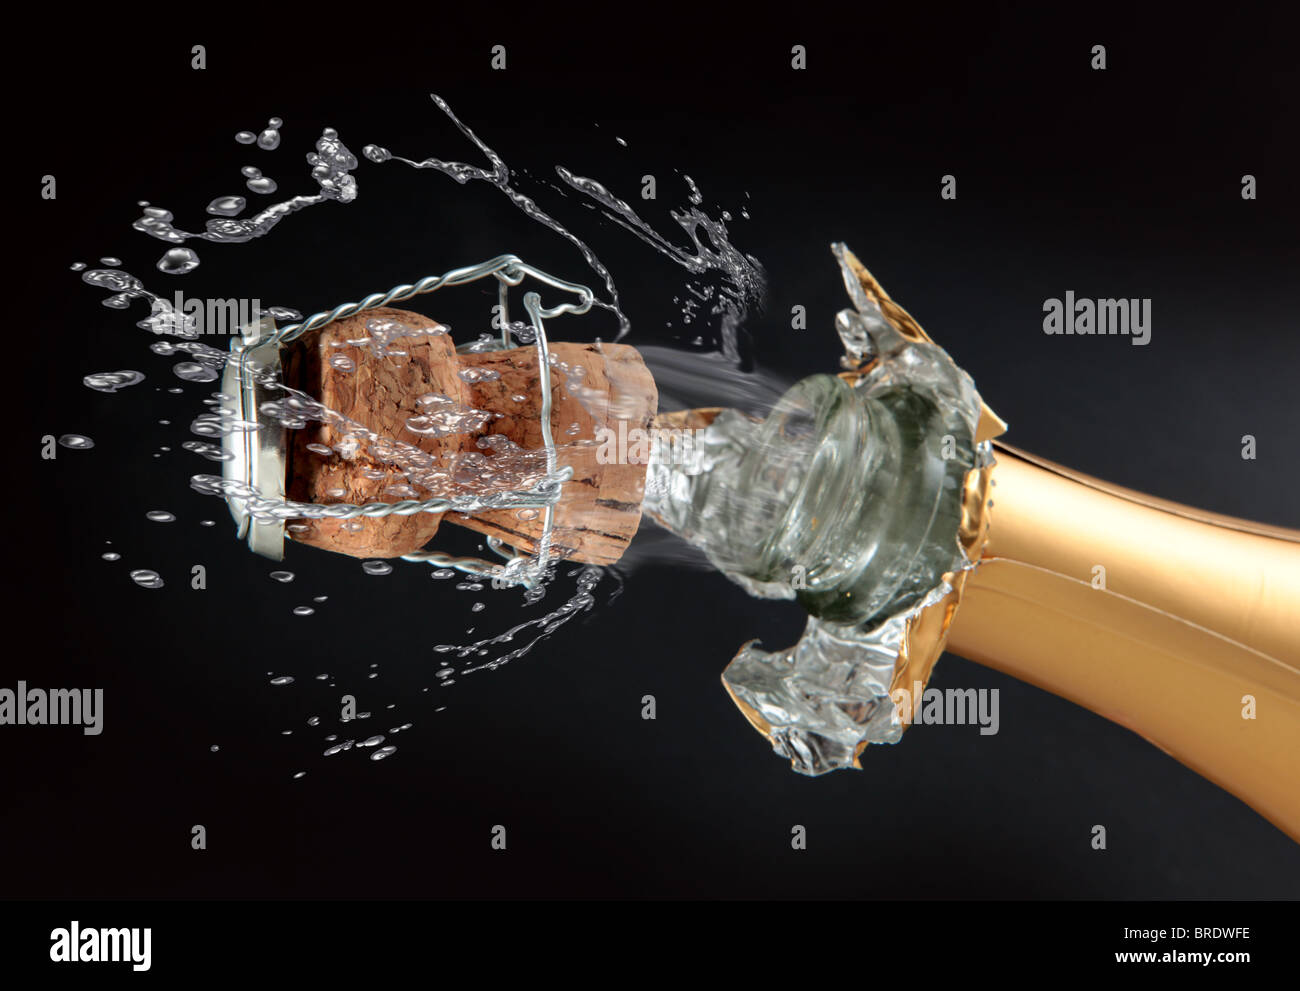 Champagne bottle cork popping - Stock Image